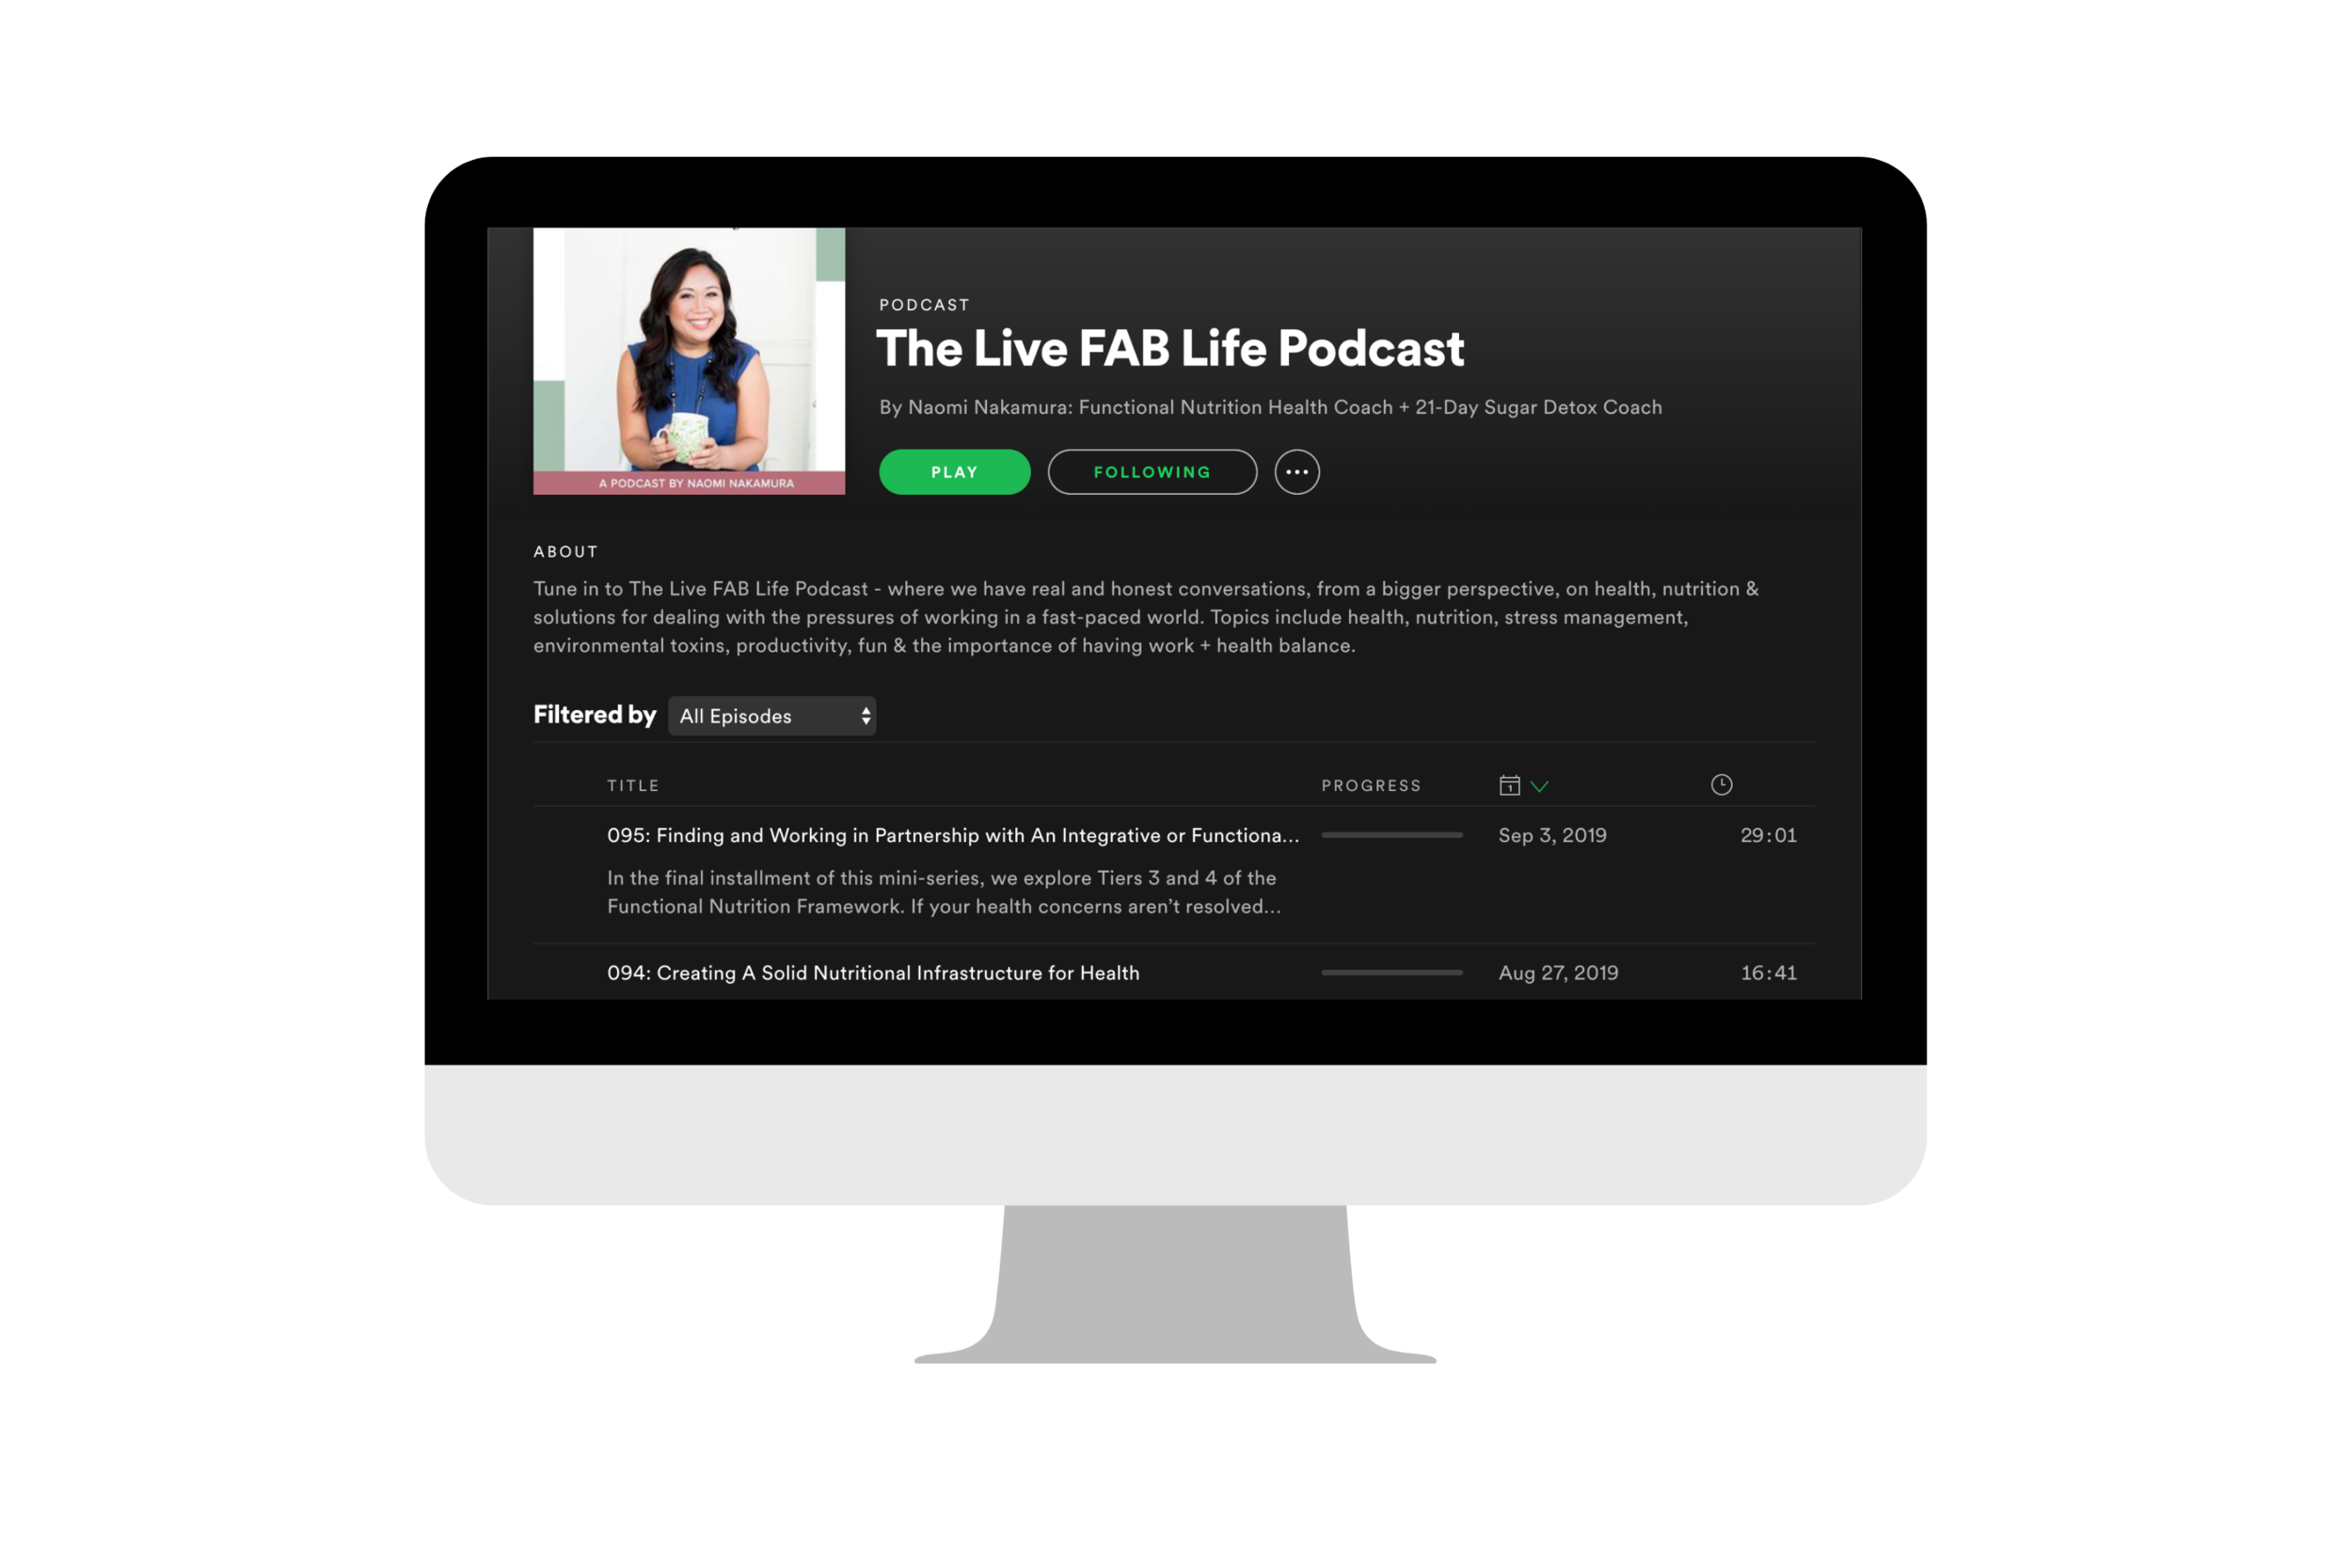 Step 2: - Subscribe to my weekly show, The Live FAB Life Podcast - new episodes every Tuesday!Found on Apple Podcasts, Google Play, Spotify, Stitcher and Tune In!